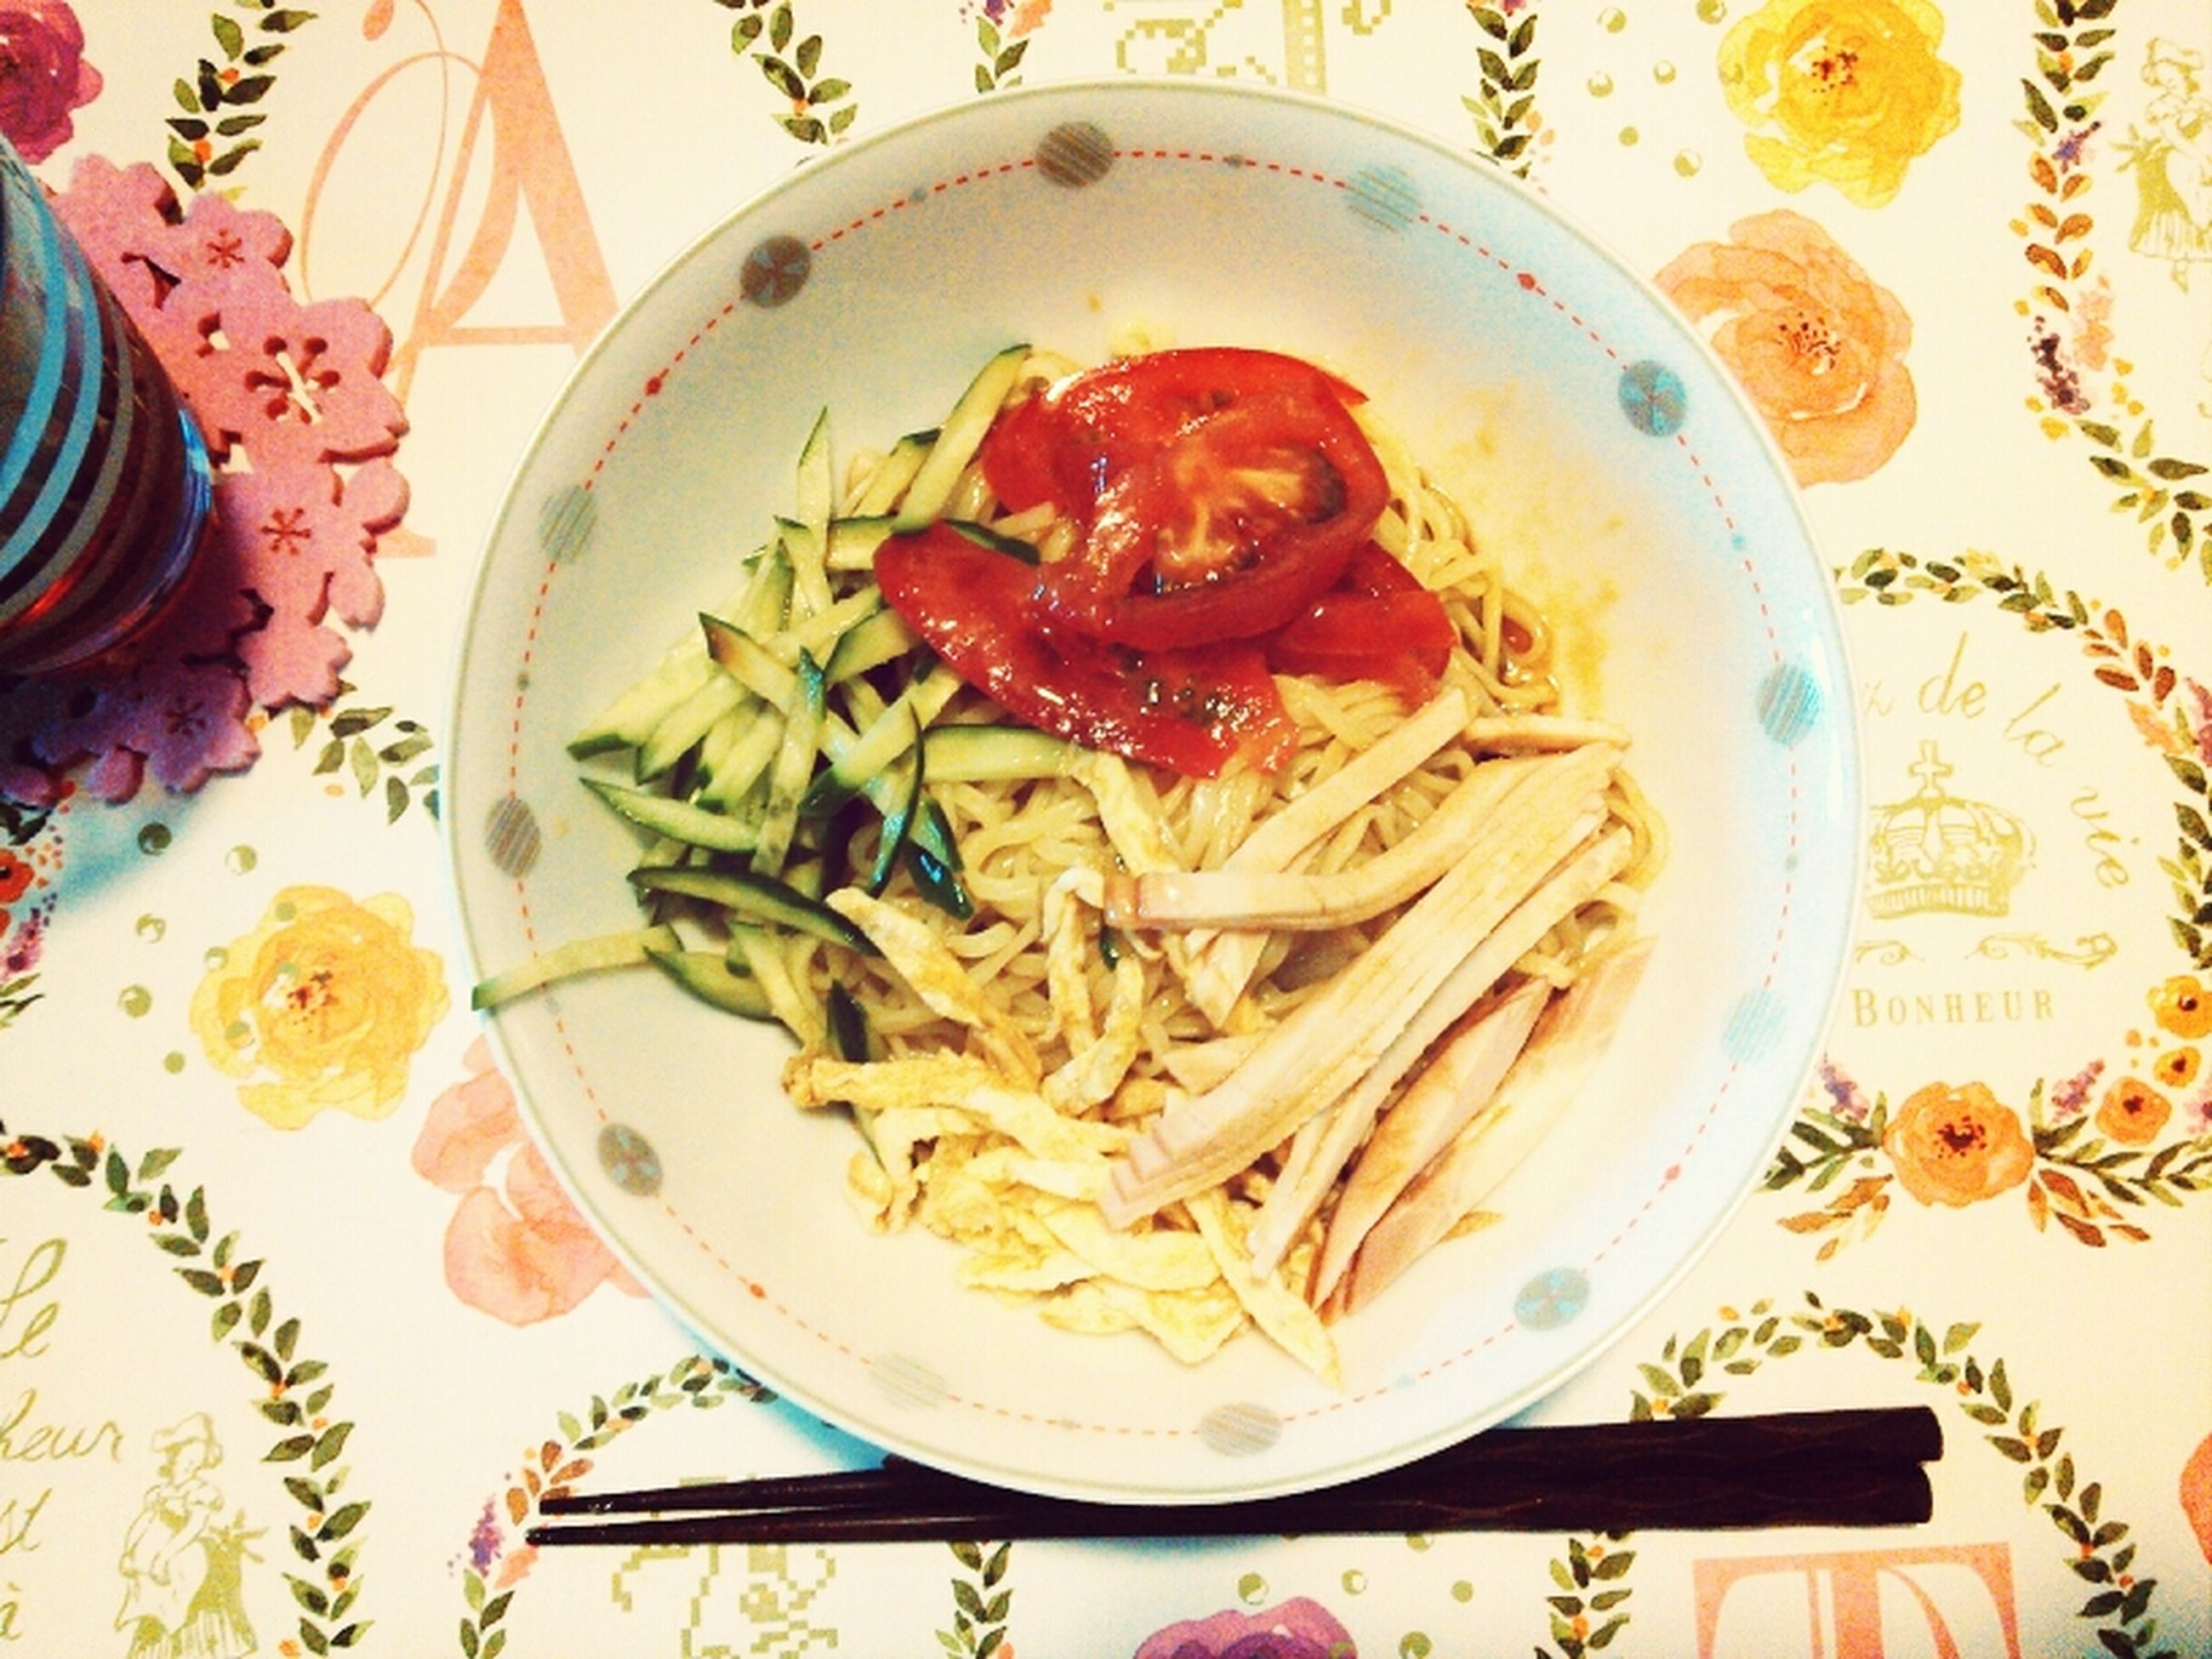 indoors, food, food and drink, plate, freshness, ready-to-eat, still life, table, serving size, high angle view, directly above, indulgence, meal, healthy eating, garnish, pasta, close-up, served, bowl, no people